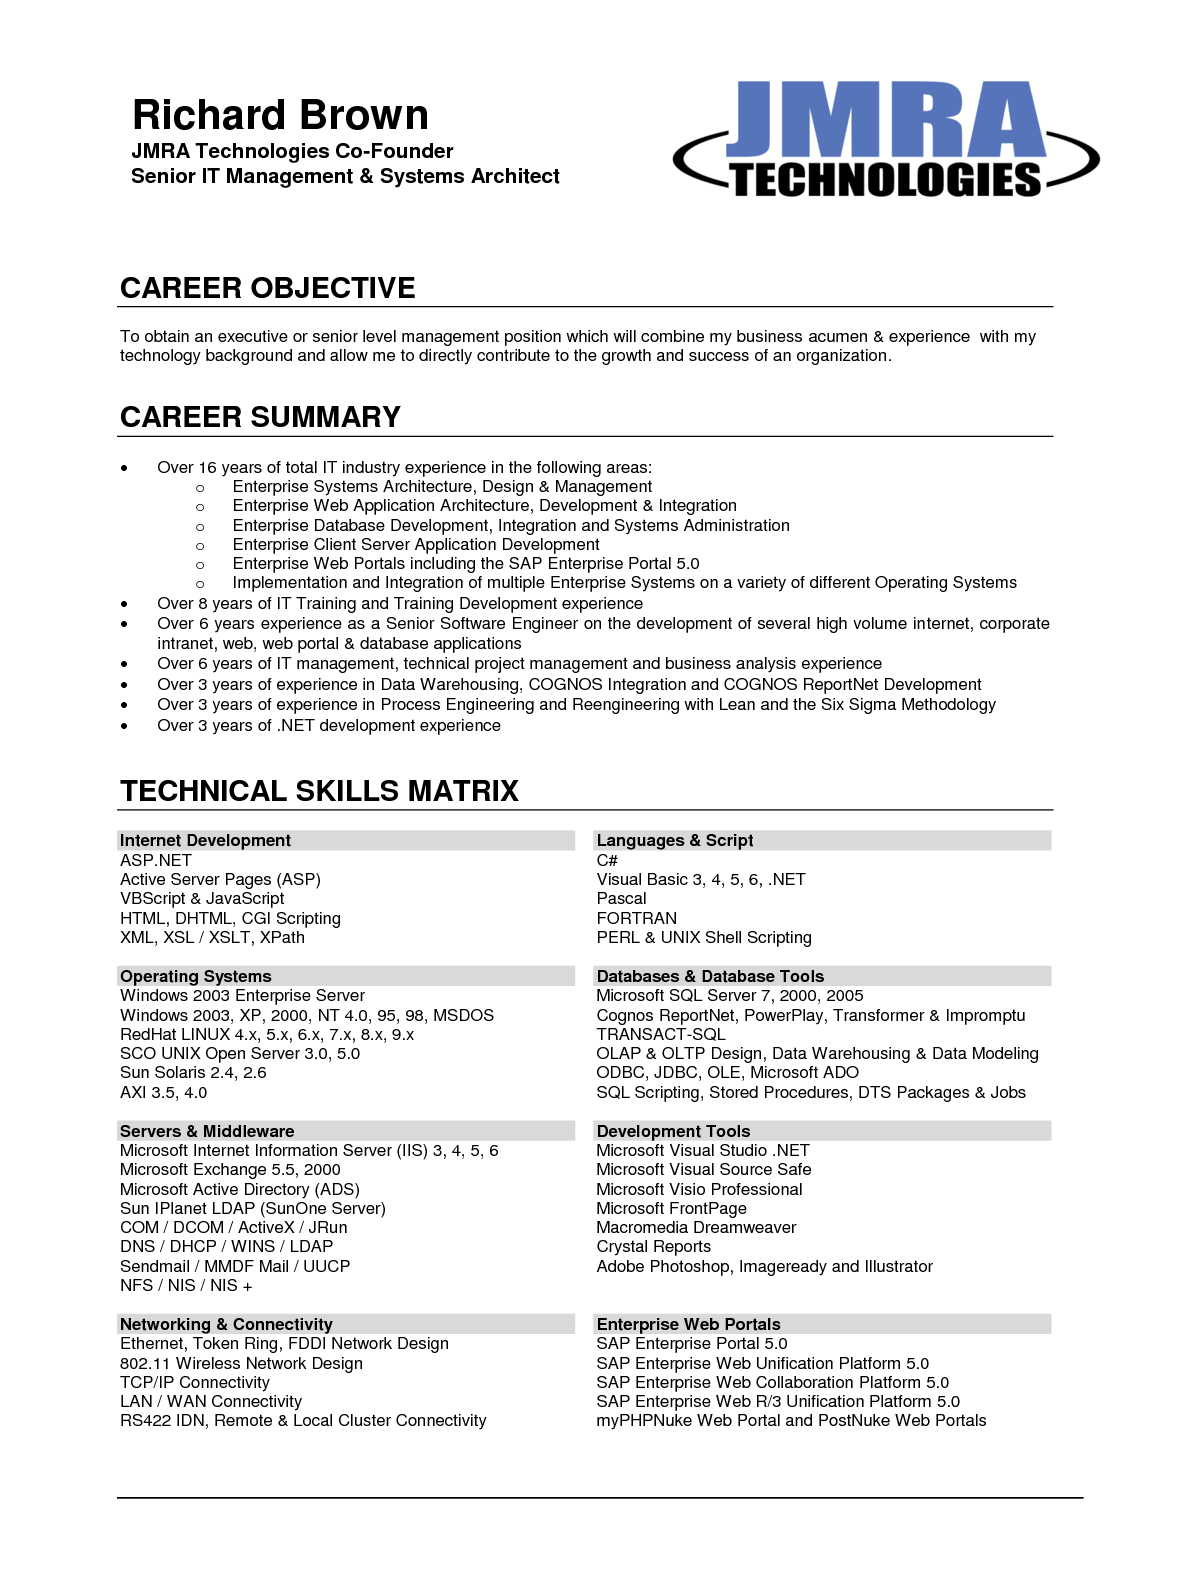 a good job resume - Good Sample Resumes